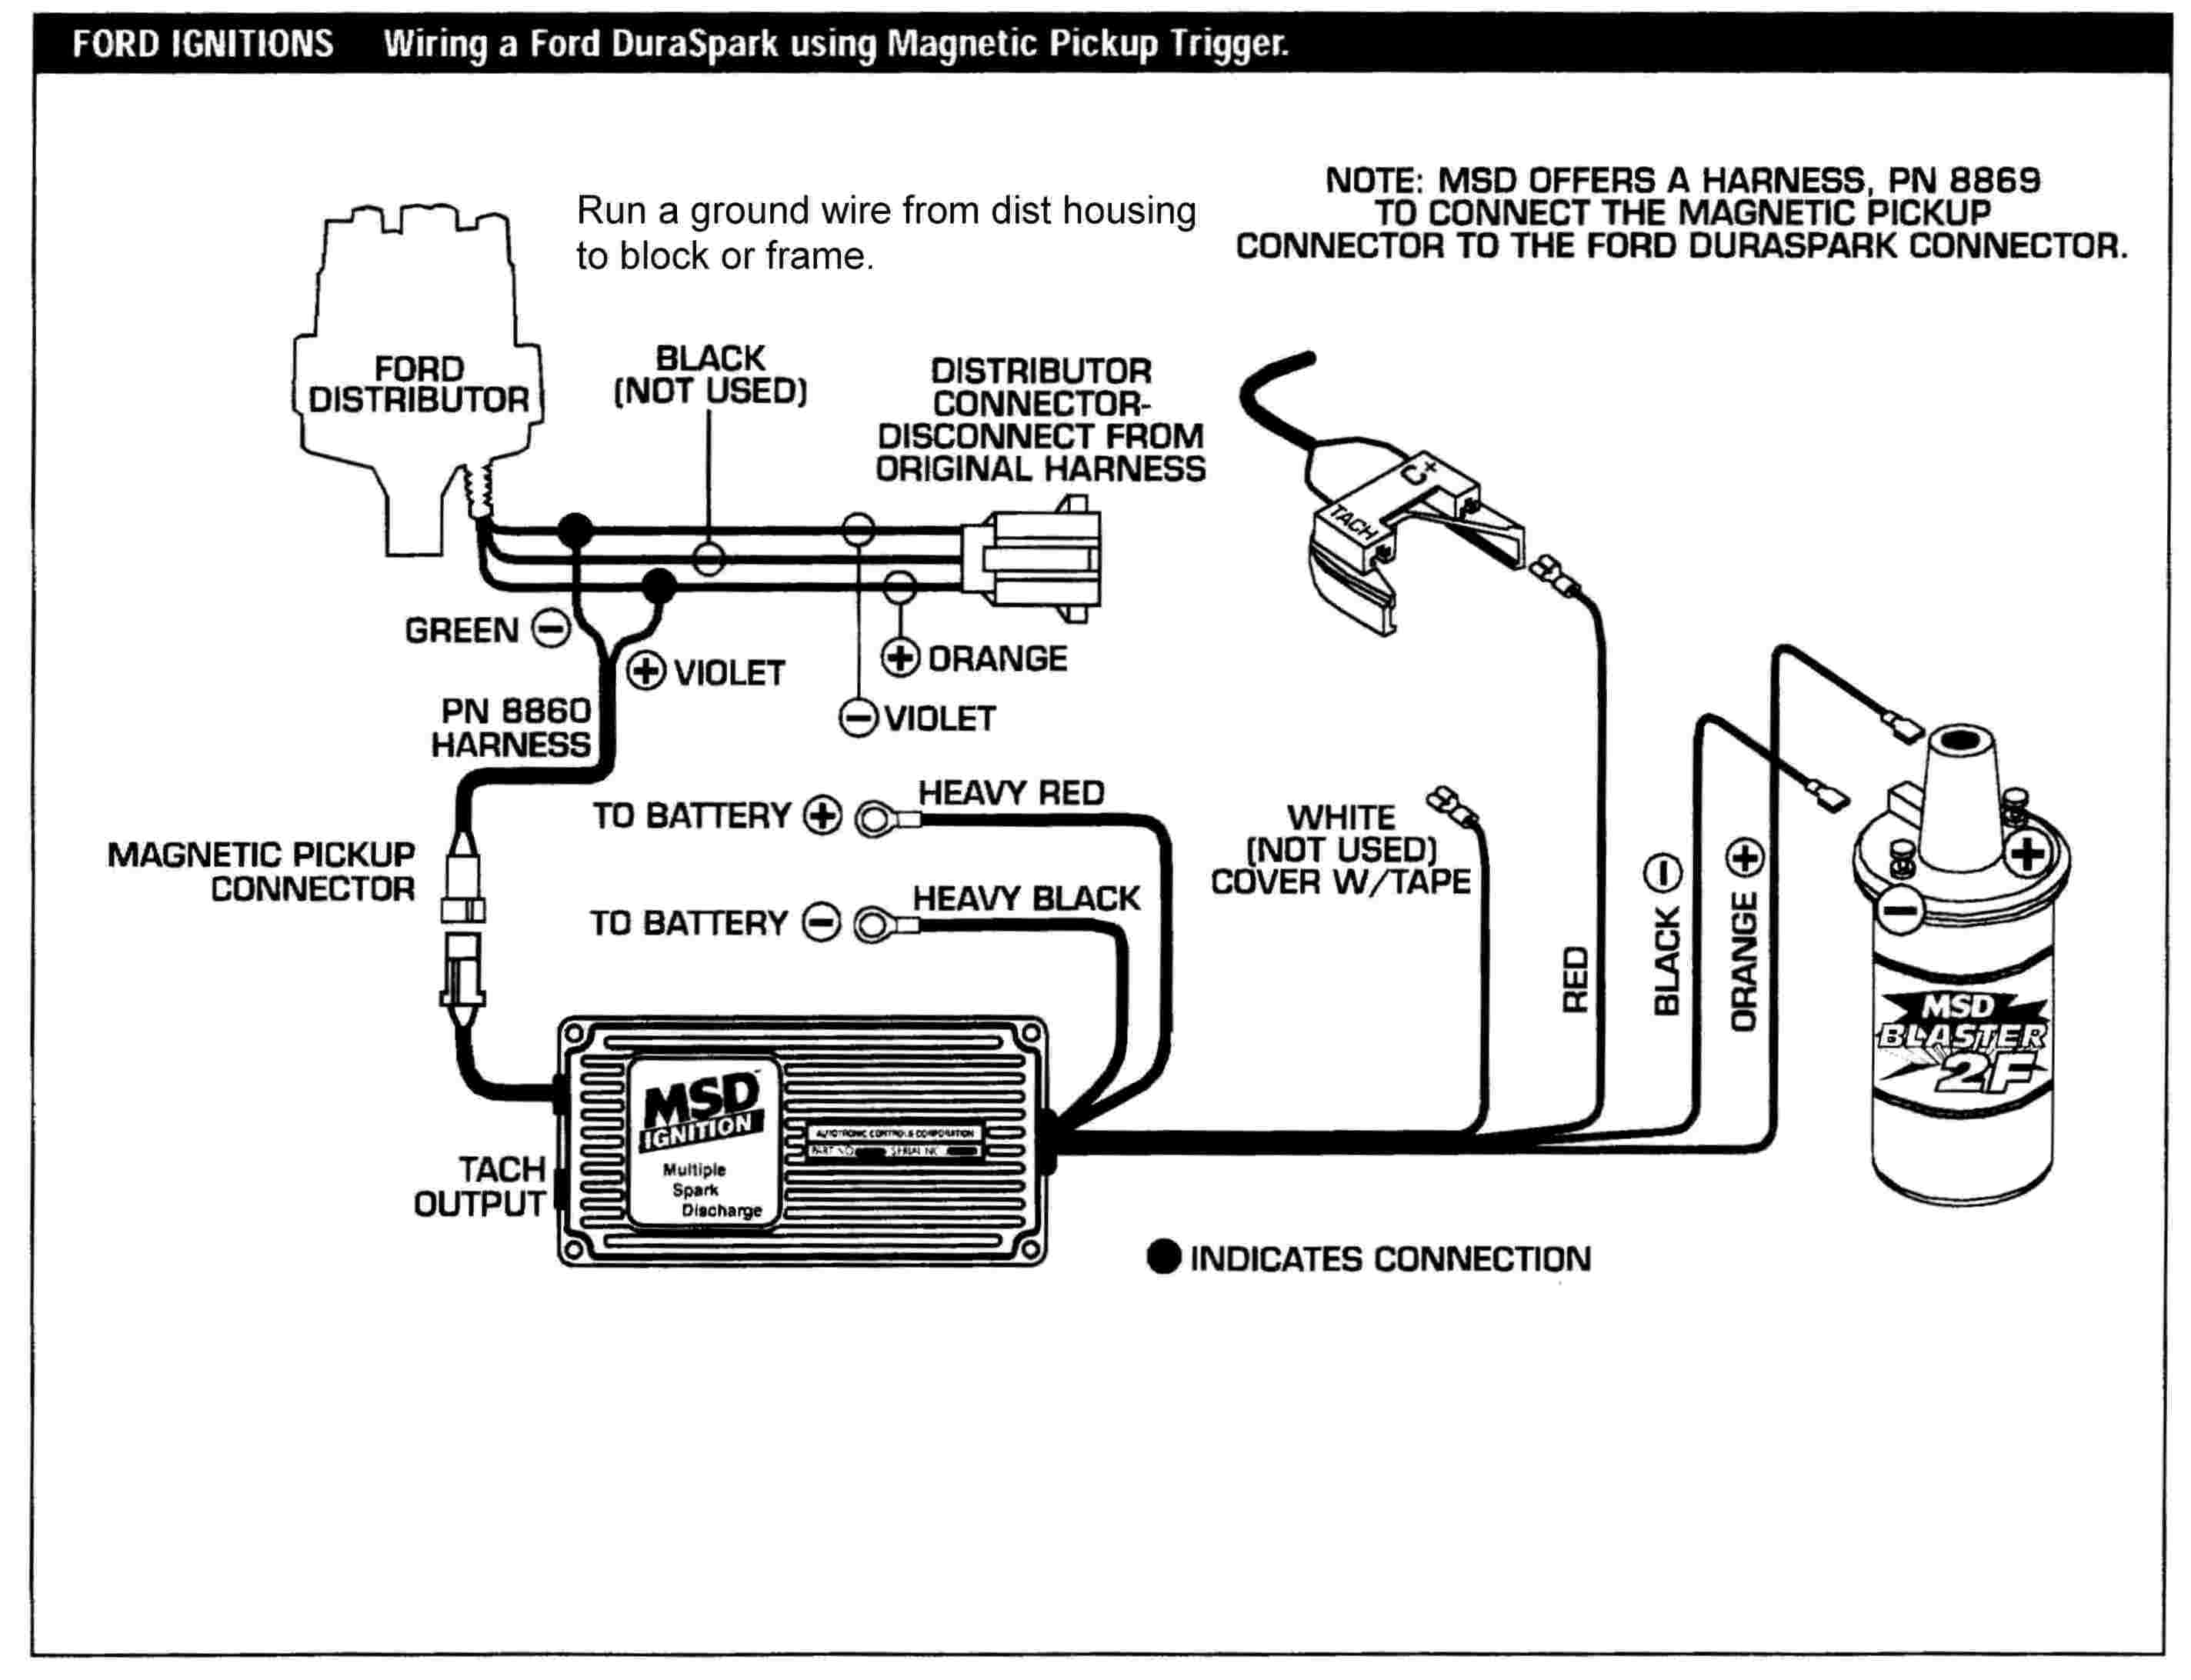 6401 Msd Ignition Wiring Diagram Ford - Wiring Diagrams Export Msd Al To Hei Wiring Diagram on msd 6al 2 wiring diagram, msd 6al box wiring diagram, distributor hei wiring diagram, msd 6al tach wiring diagram,